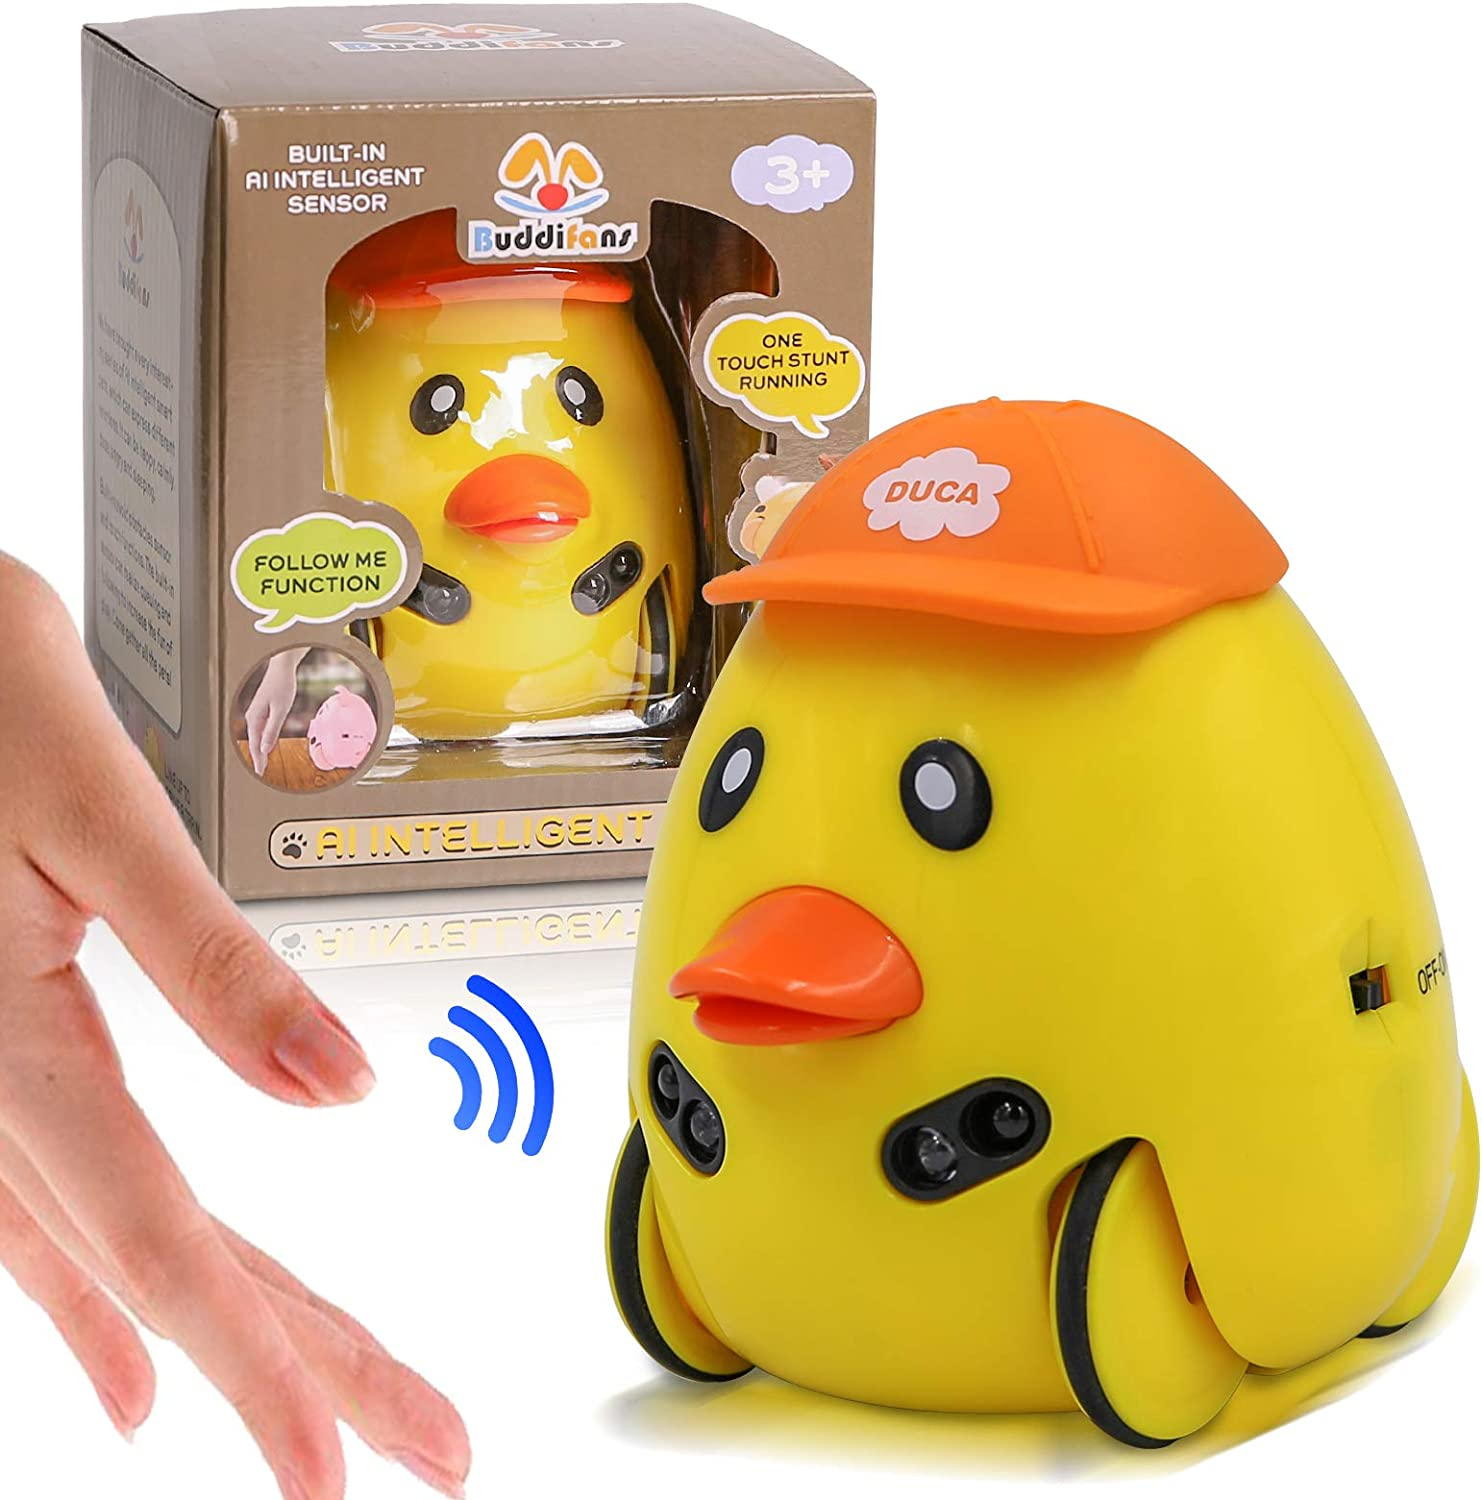 DoDoMagxanadu Baby Music Toy, Toddler Dancing Pet Music and Sound Toys, Aiintelligent Sensor Preschool Creative Infant Toys Baby for 1 2 3 Year Old Boys & Girls (Duck)